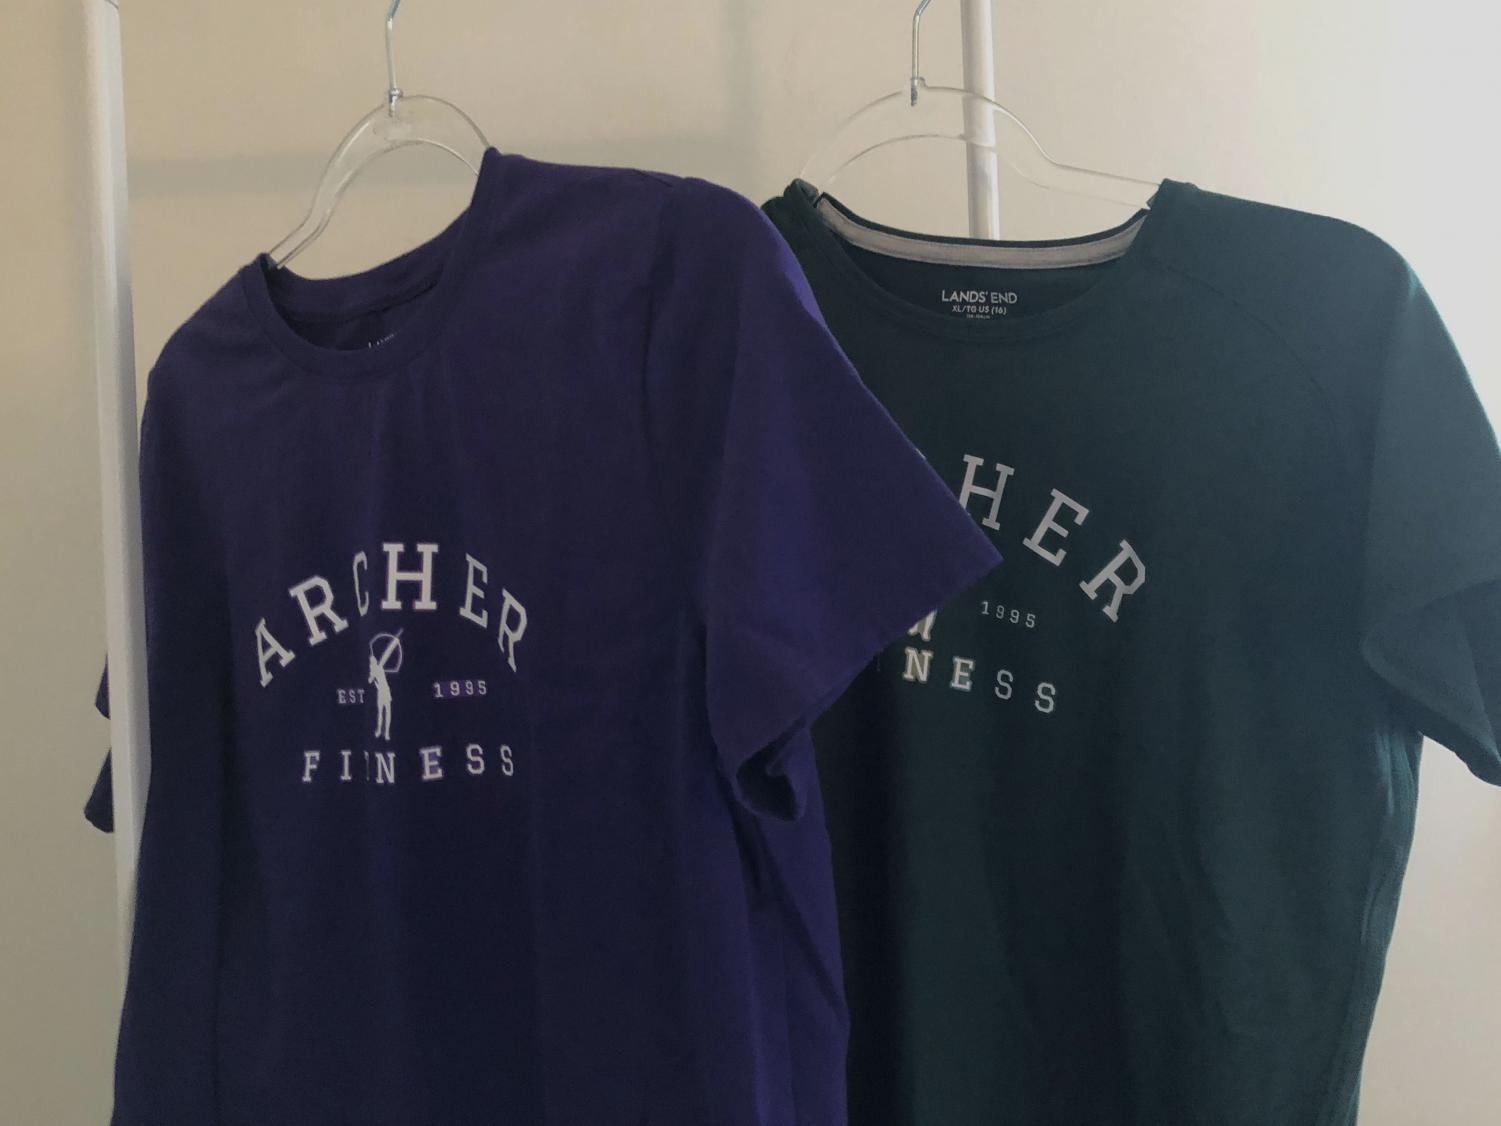 The Fitness and Wellness Department created a new uniform, which comes in purple or green. Department Chair Stephanie Ferri said that the department adapted the uniform based on